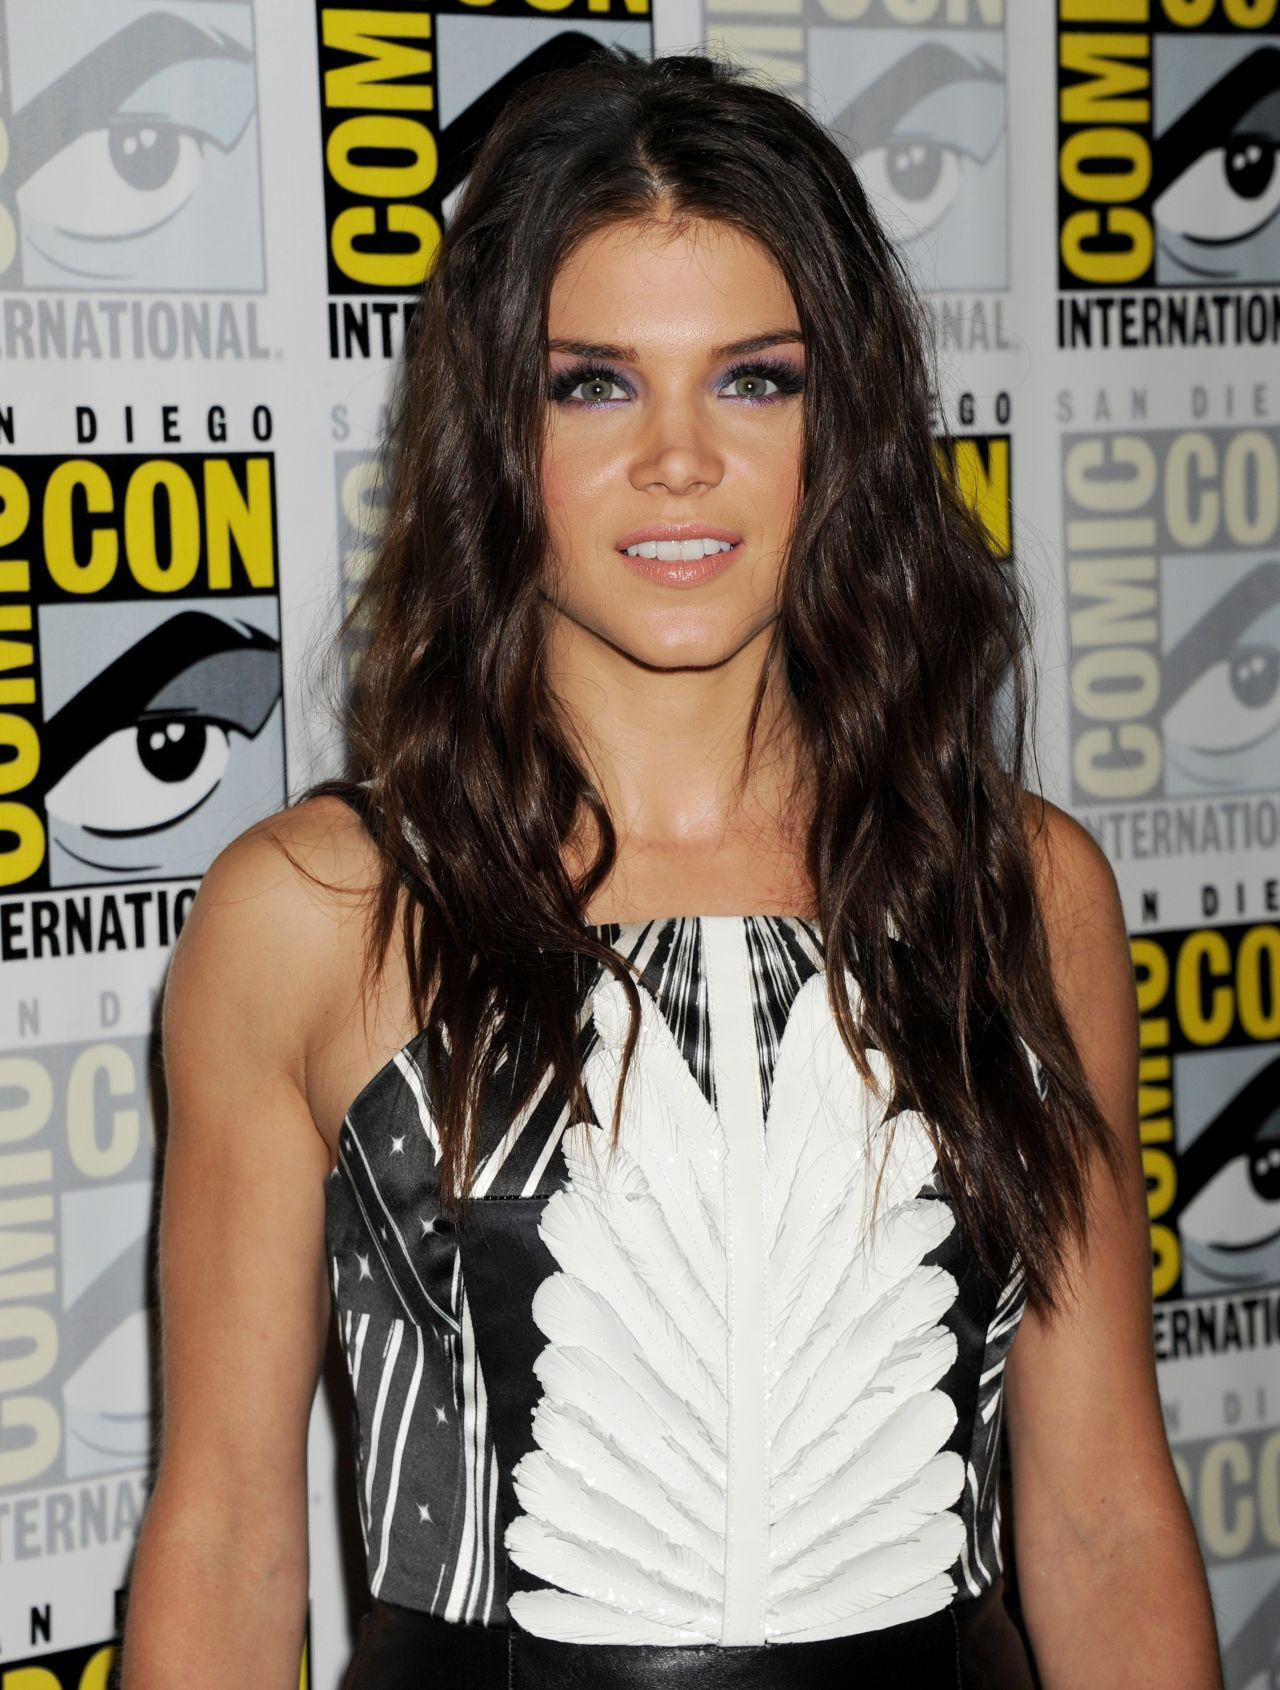 Wallpaper Falling Skies Marie Avgeropoulos The 100 Press Line At Comic Con In